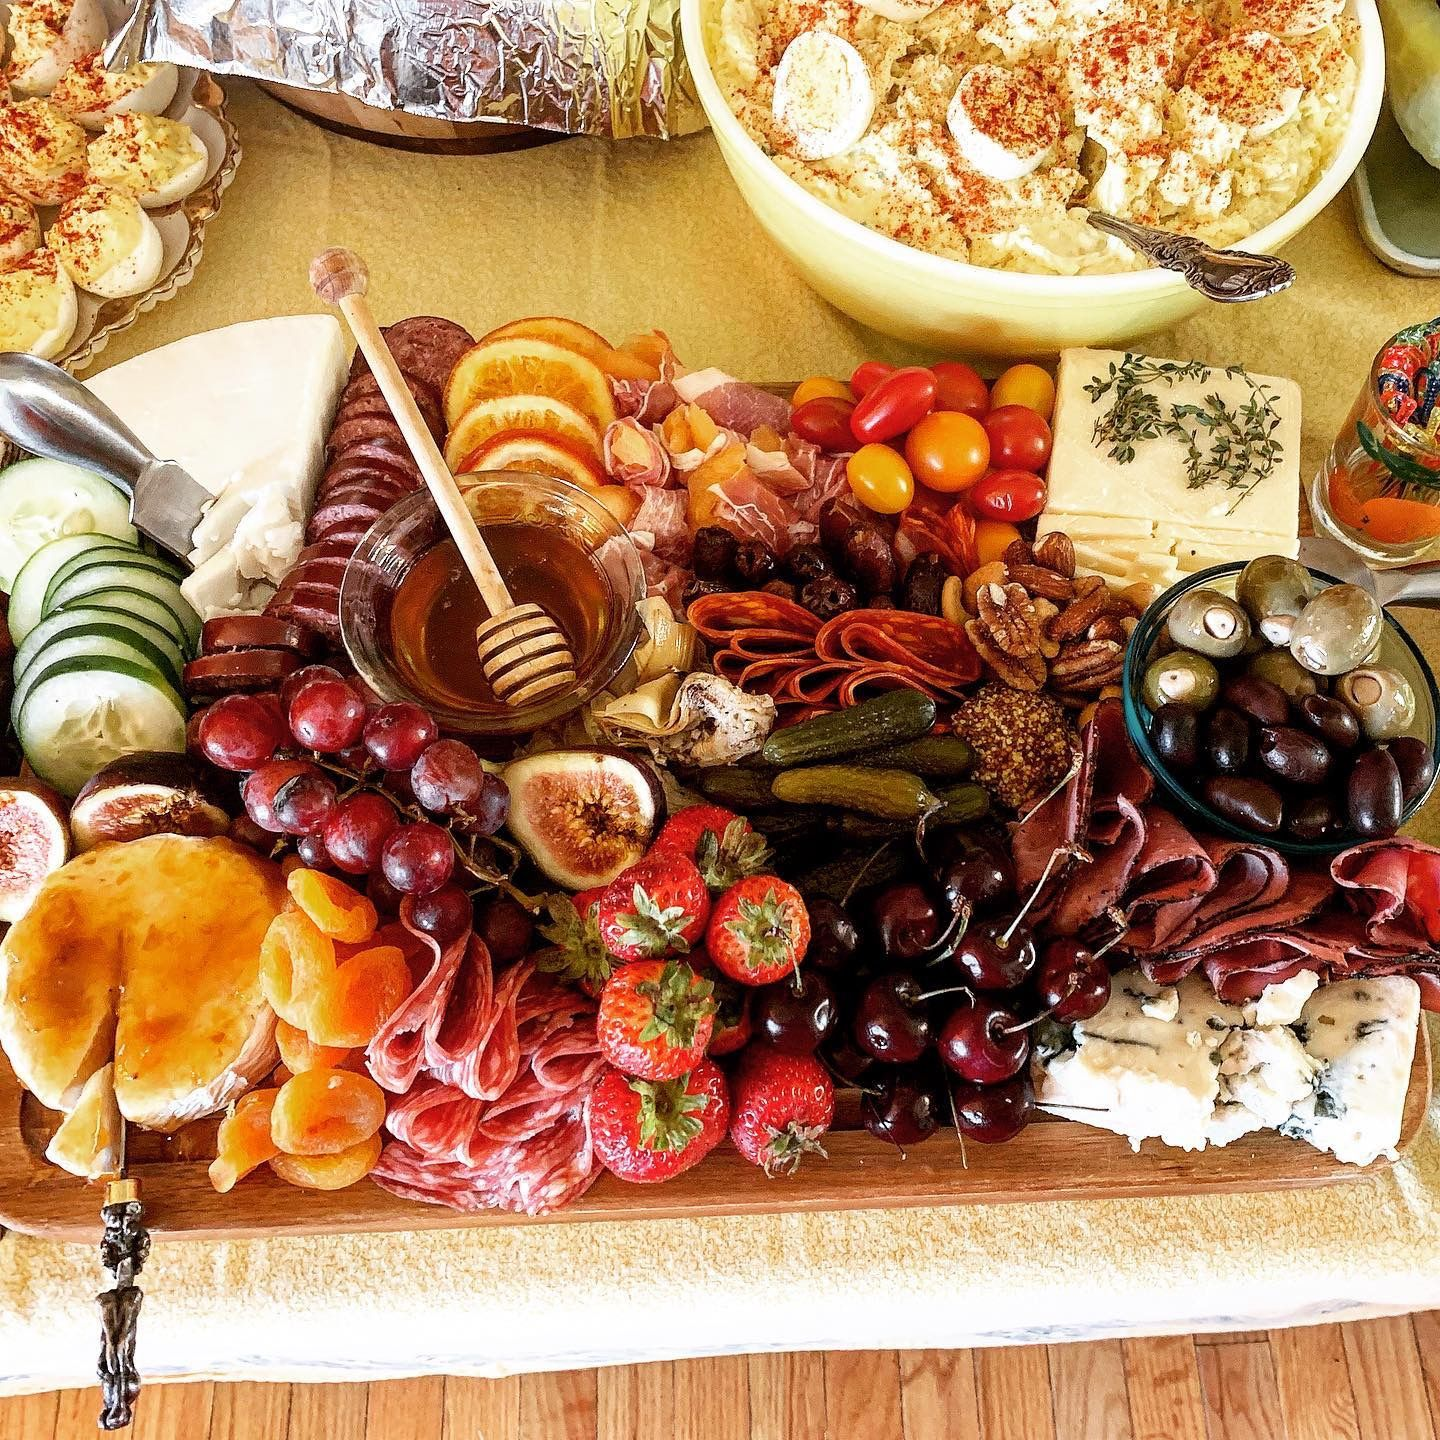 Pin By Laurie Sitterding On Wedding Fingerfoods Food Cheese Board Grazing Tables